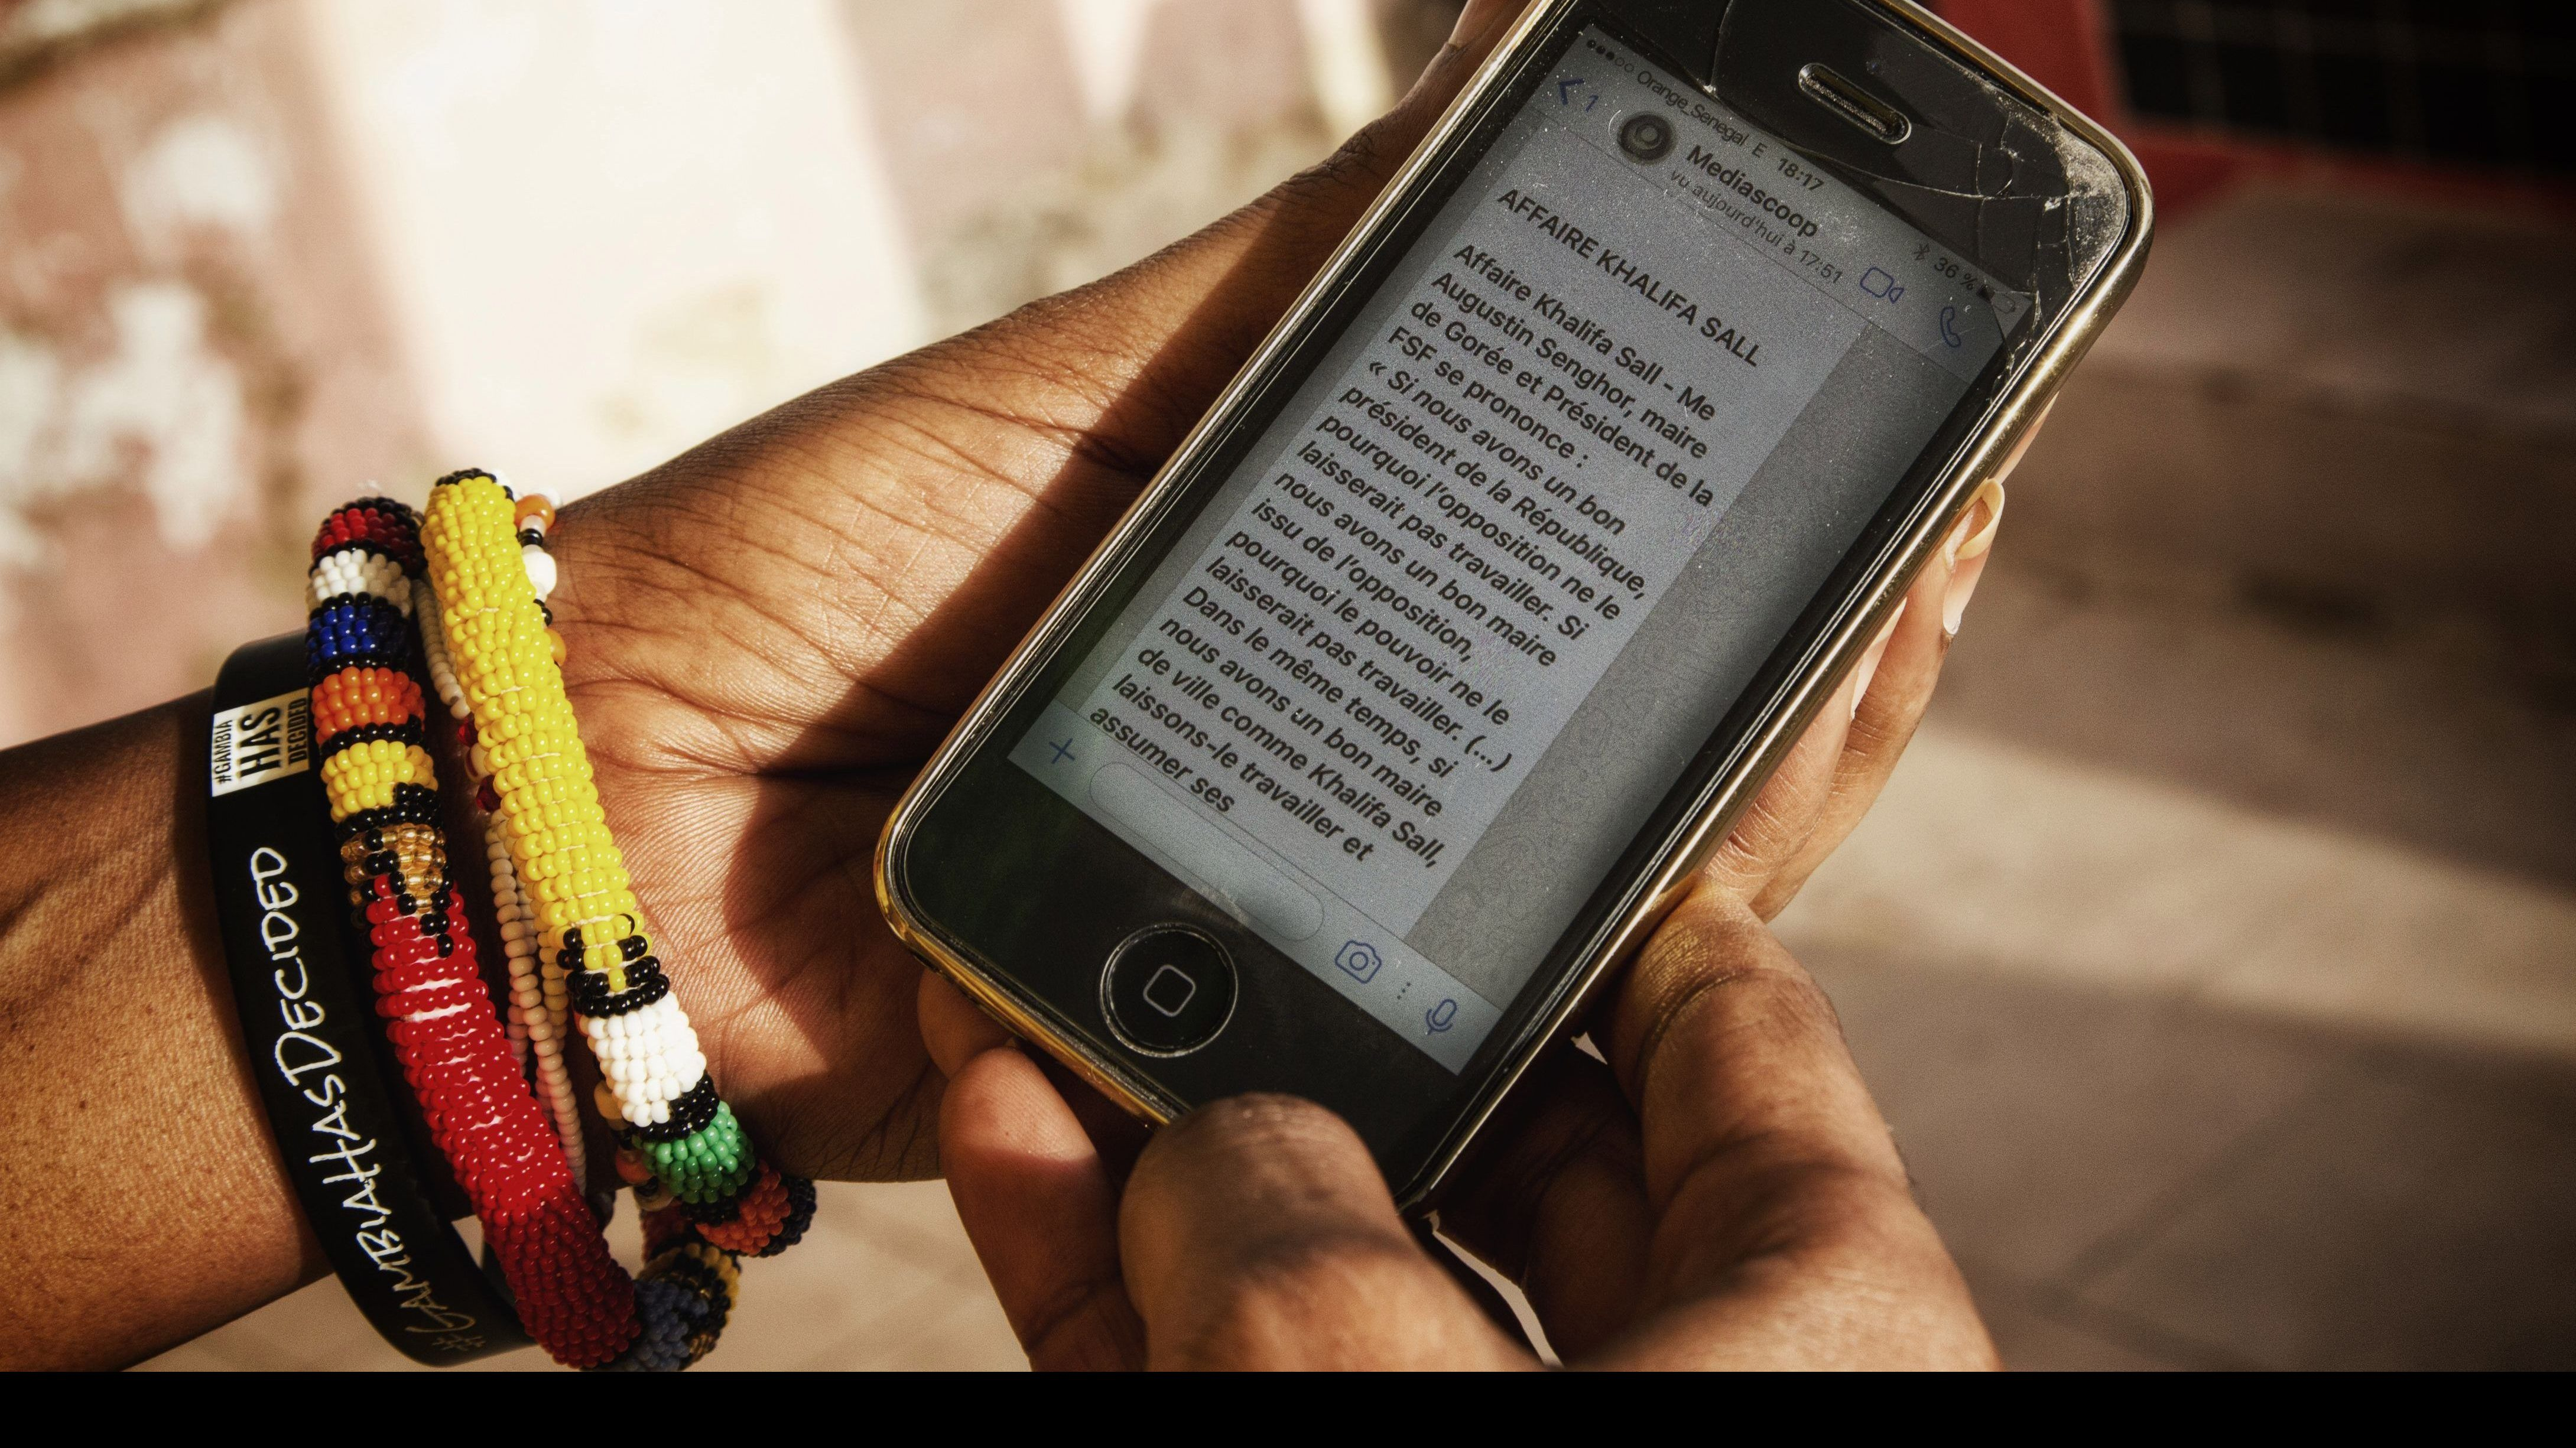 On the mobile of Aisha Dabo, a text of the new media project Africactivists, Mediascoop, transmitted via WhatsApp